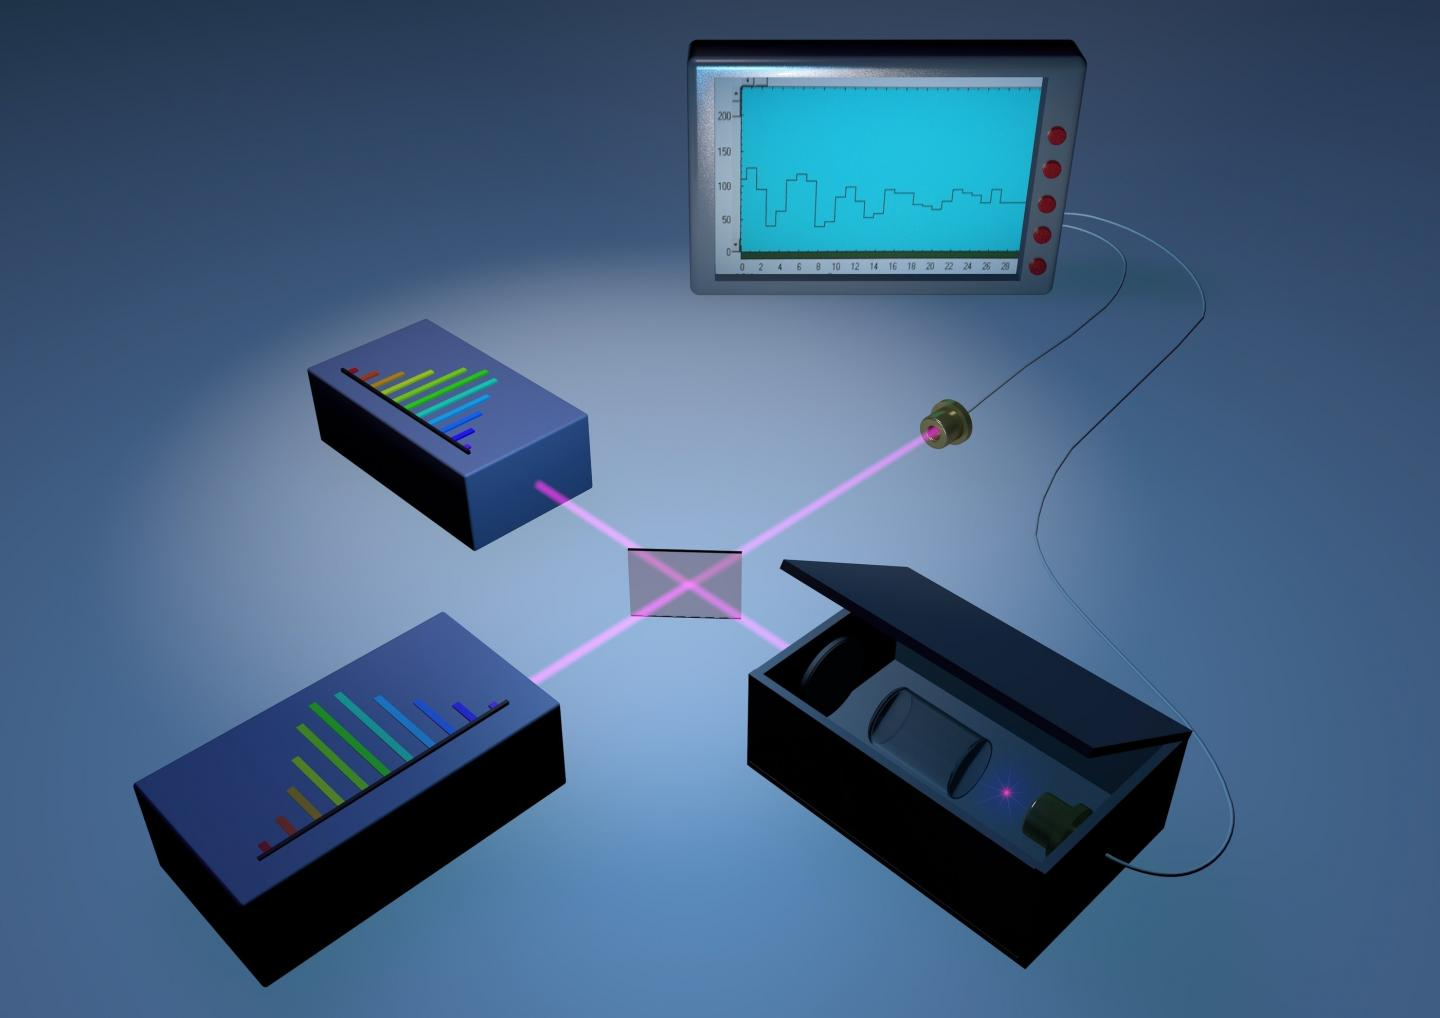 Photon-counting dual-comb spectrometer